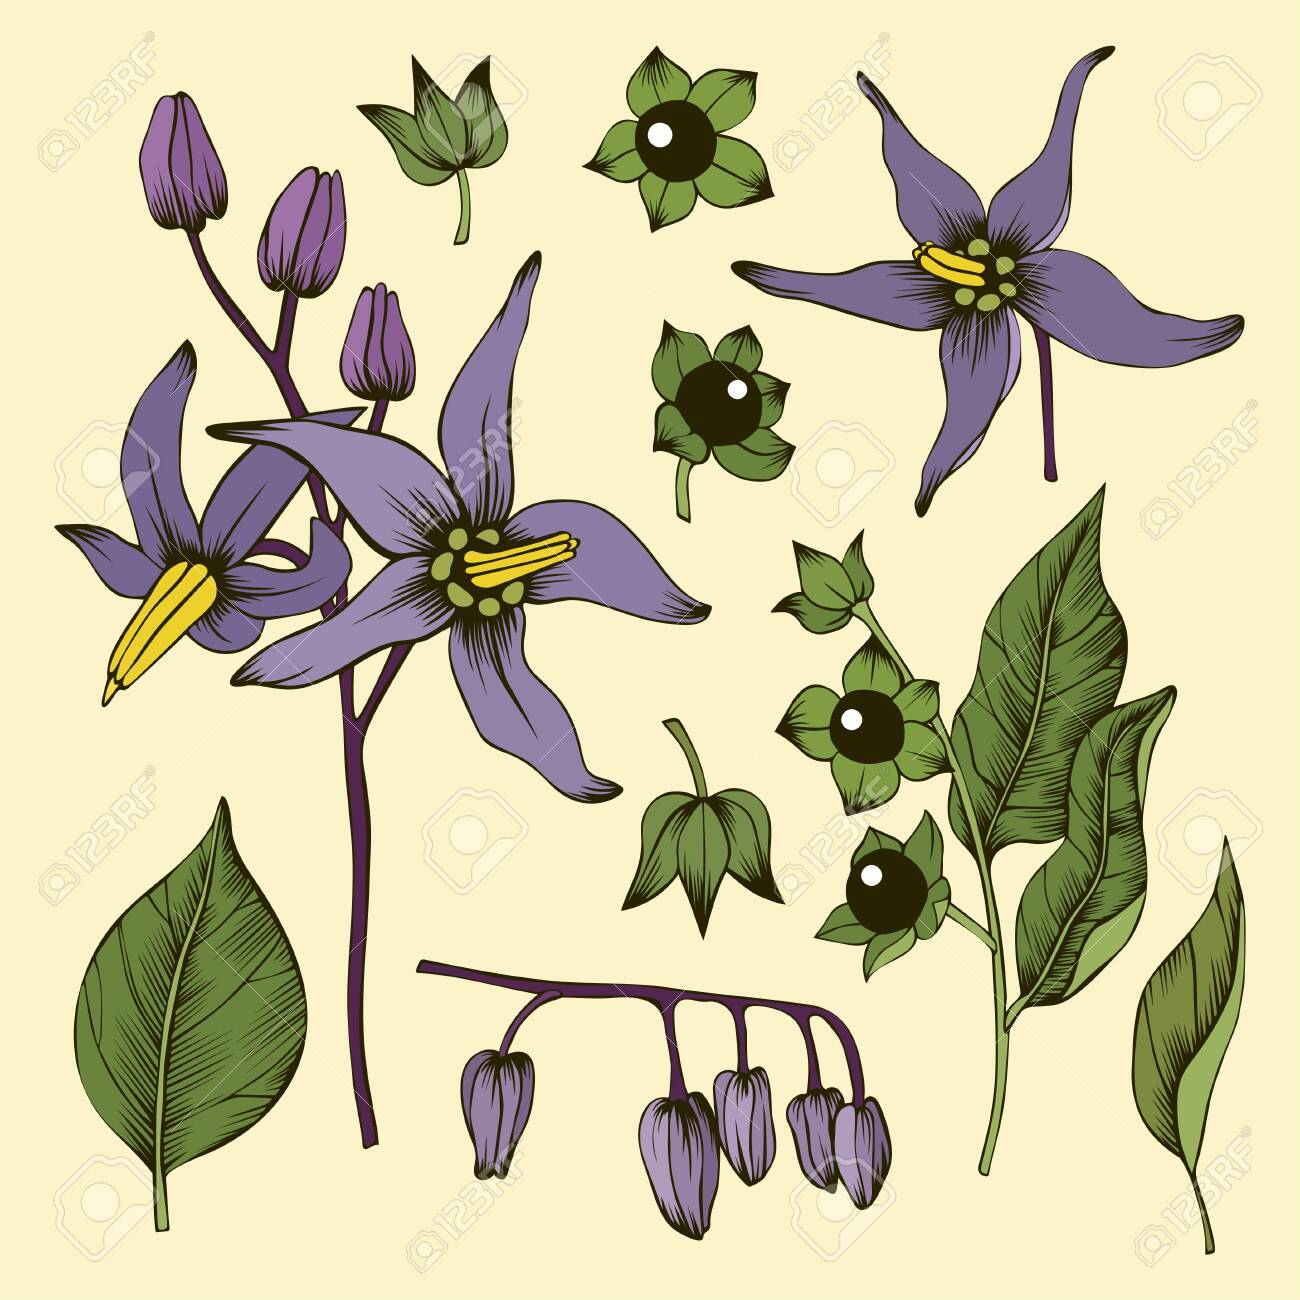 Deadly Nightshade Flowers Leaves Buds And Berries Royalty Free Cliparts Vectors And Stock Illustration Image 134377982